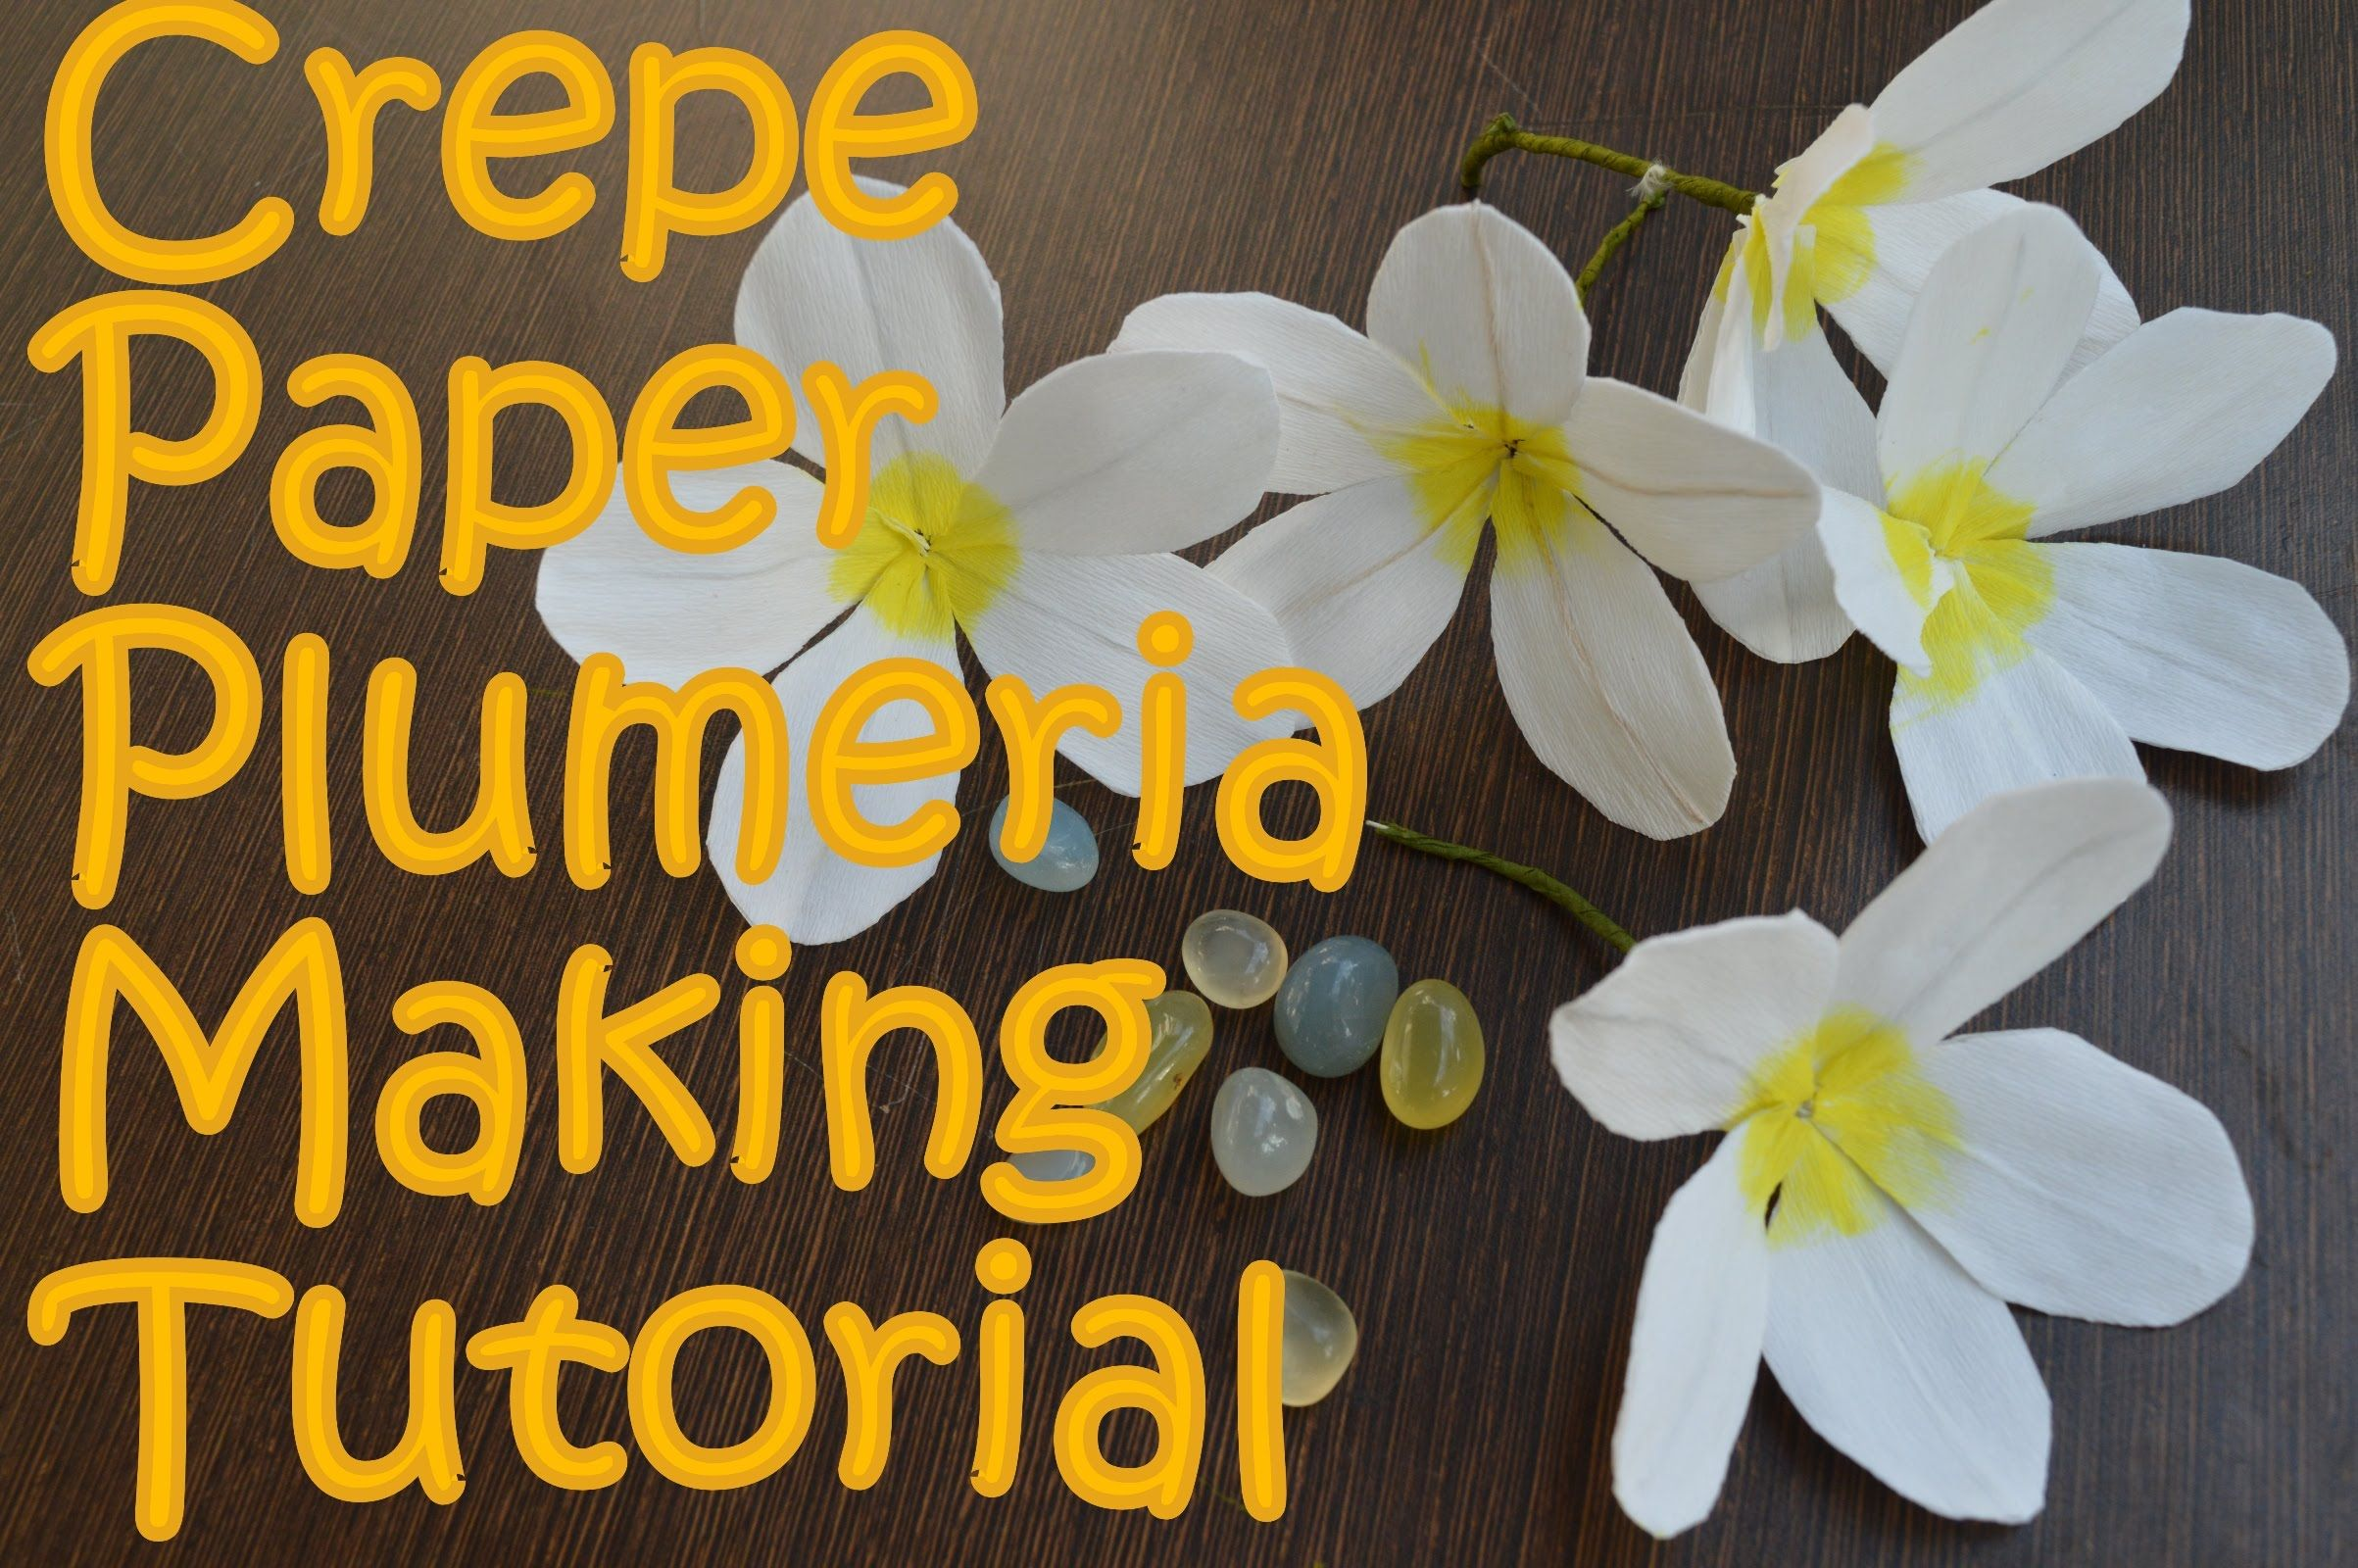 Crepe paper plumeria flower making tutorial av visuals tutorials diy how to make crepe paper plumeria flower also called frangpani at home easily looks great in various decorations including hawaiian lei izmirmasajfo Choice Image